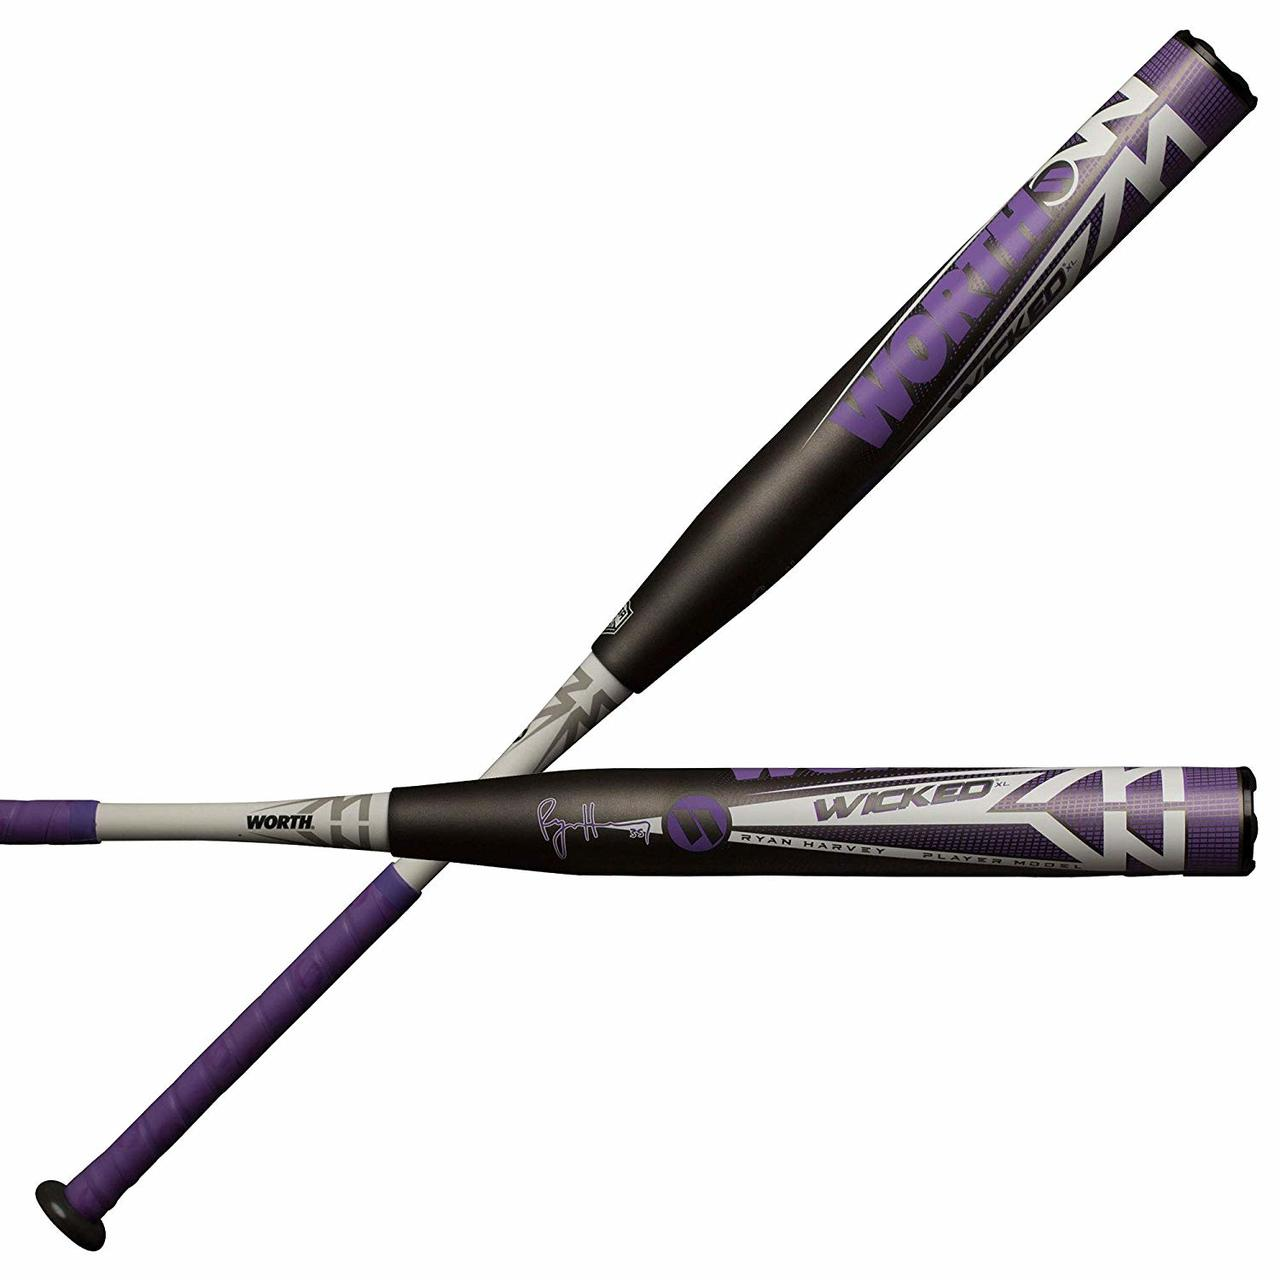 worth-wicked-xl-ryan-harvey-asa-wkrhma-slowpitch-softball-bat-34-inch-28-oz WKRHMA-3-28 Worth 658925041143 2 1/4 Inch Barrel Diameter 3-Piece Composite XL Weighting Approved for